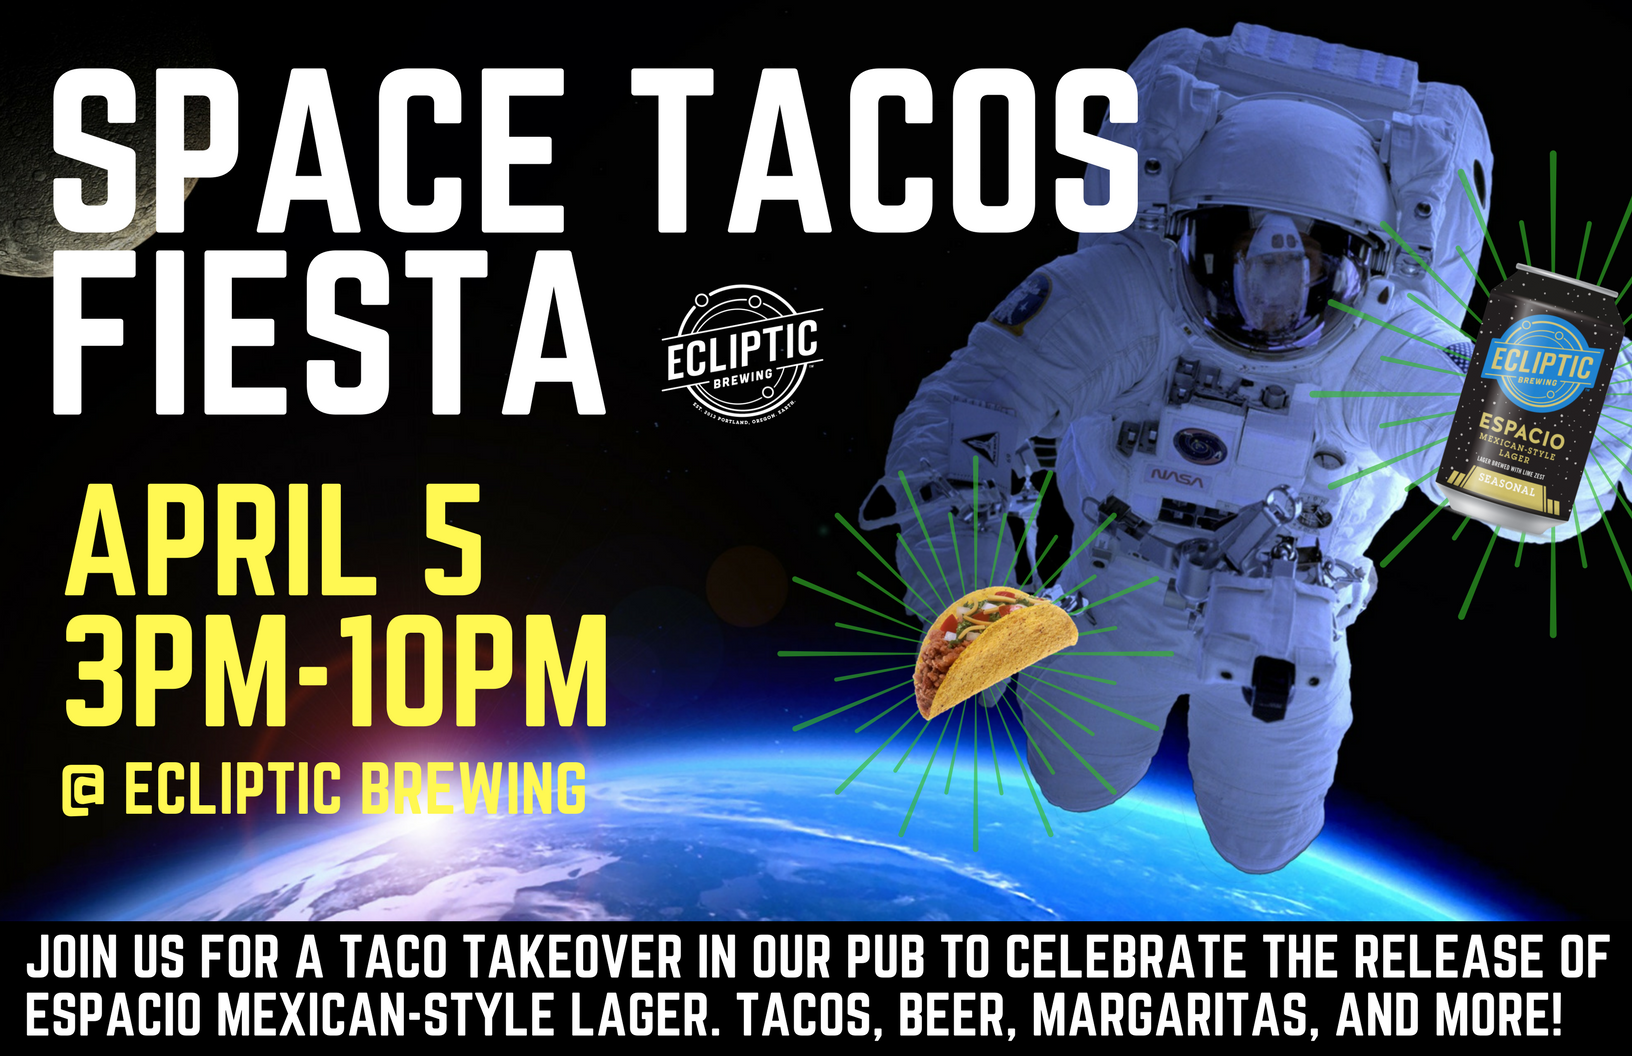 Ecliptic Brewing Space Tacos Fiesta April 5, 2018